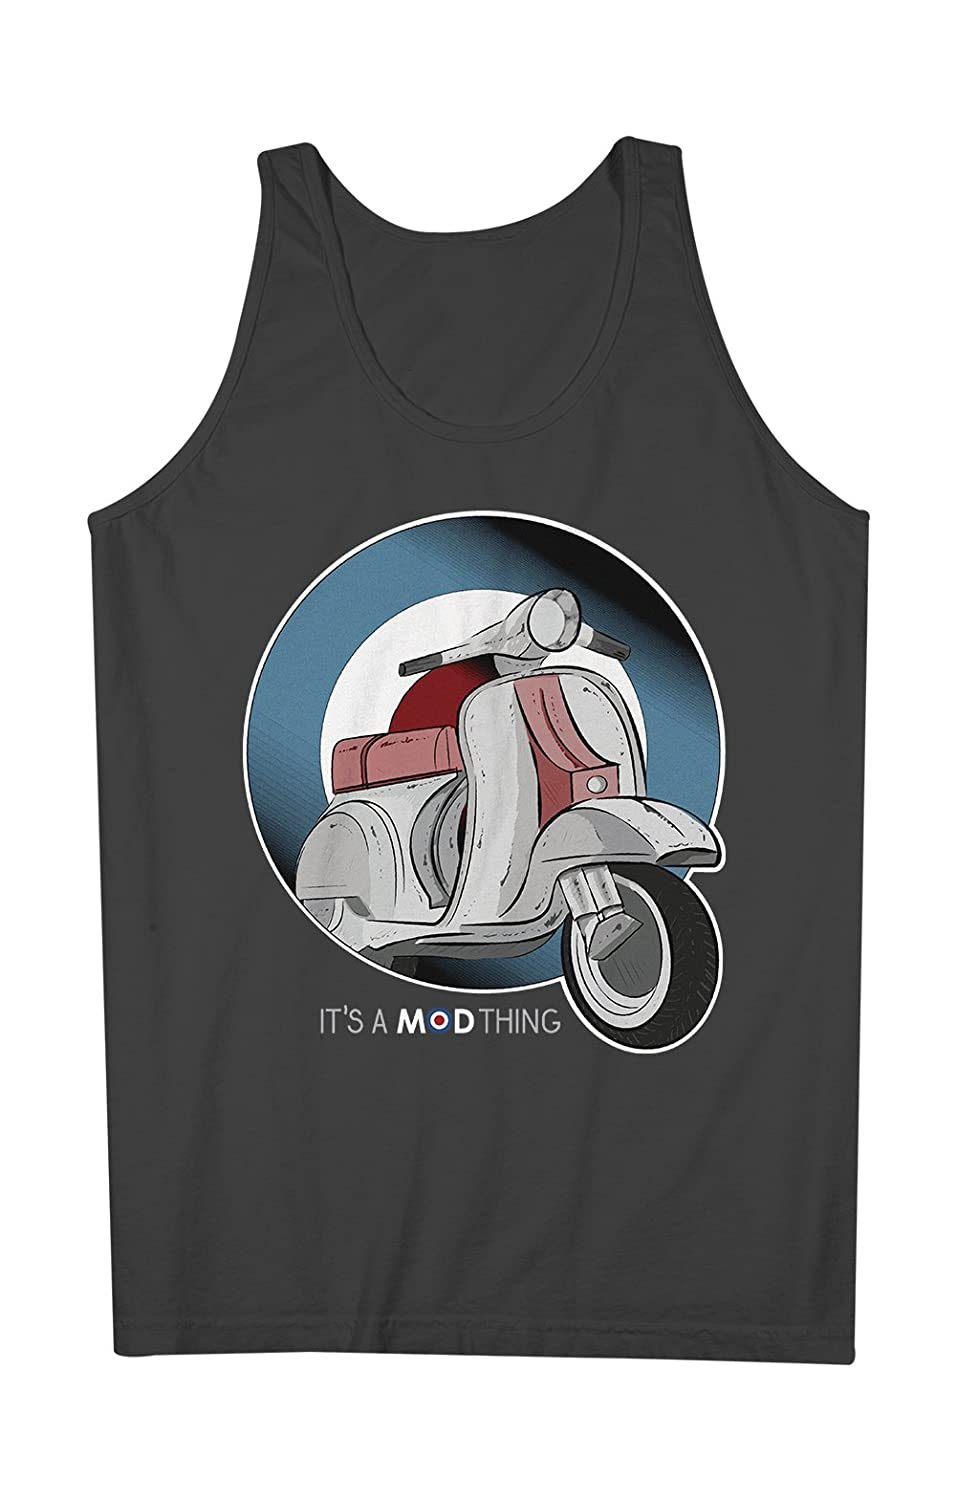 It's A Mod Thing Moped Mod Culture 男性用 Tank Top Sleeveless Shirt